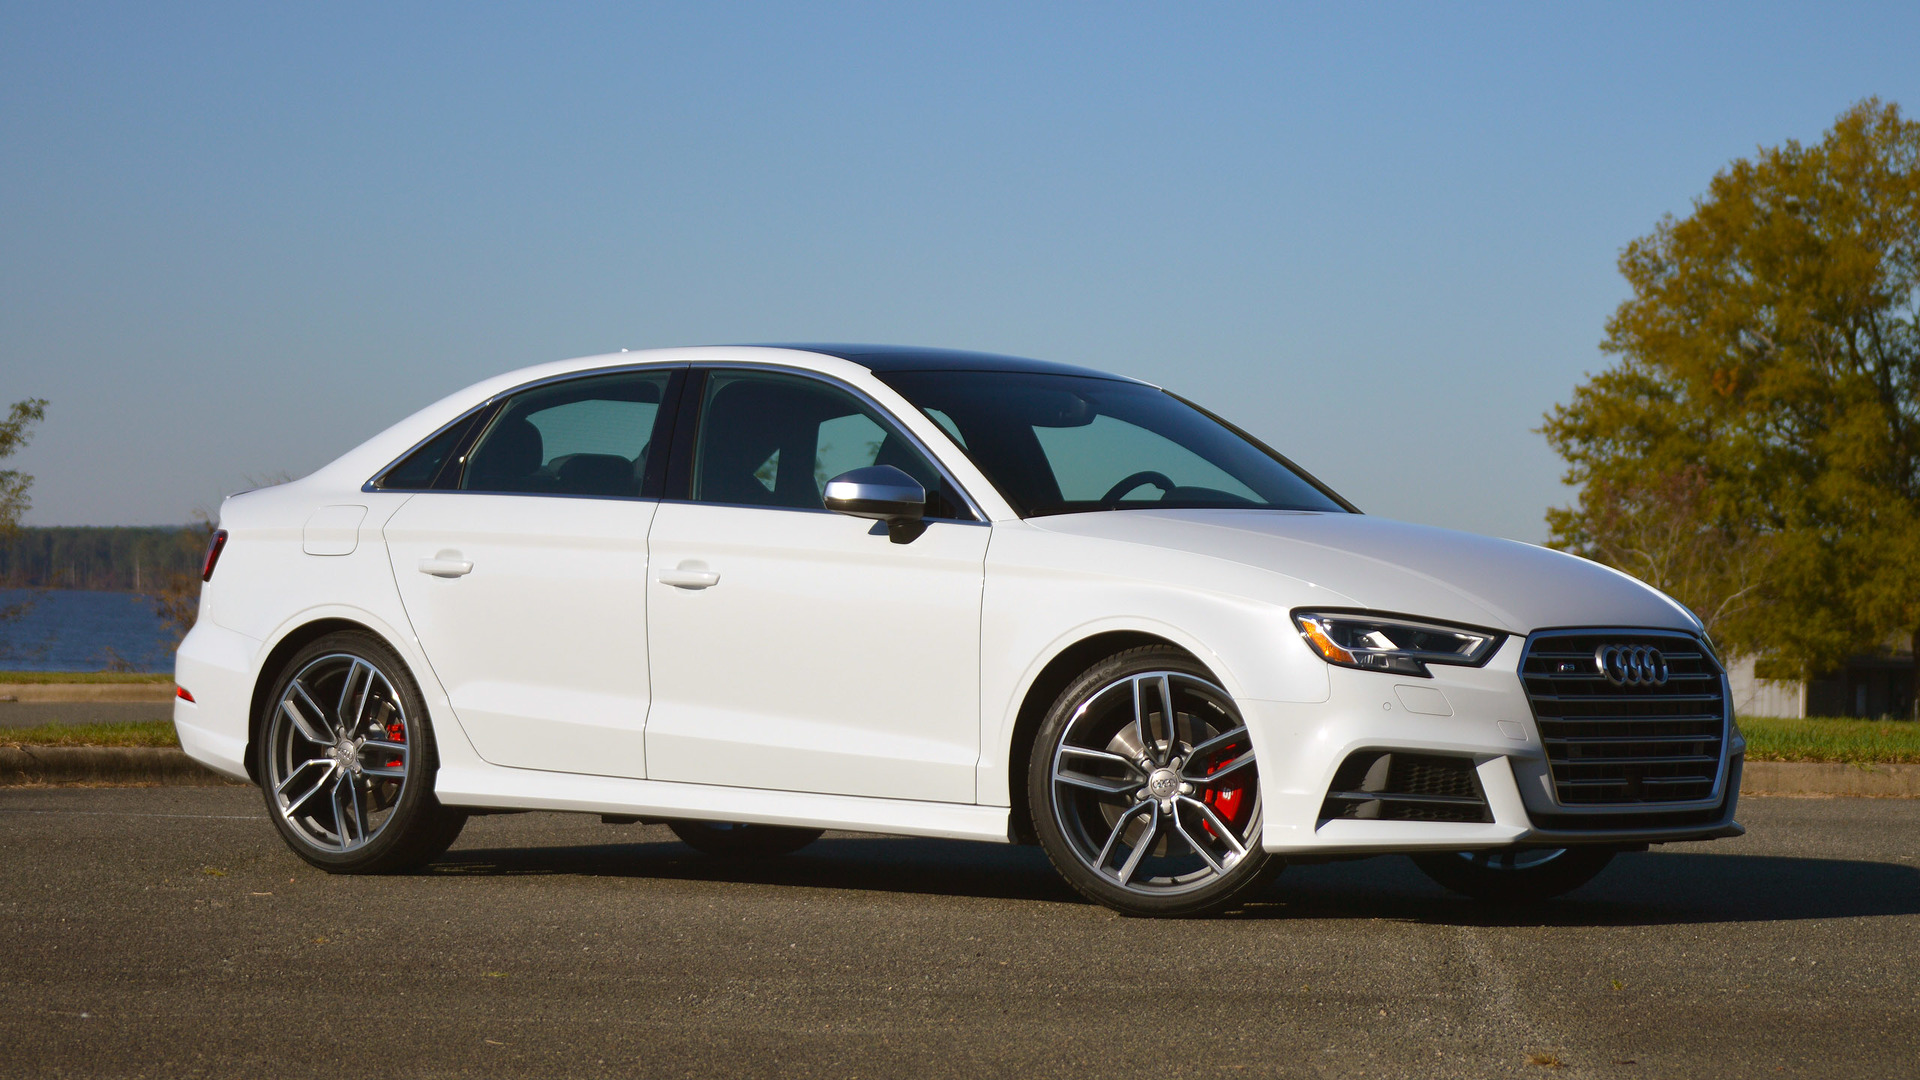 Audi 0 60 >> 2017 Audi S3 First Drive: Killer tech improves a sound driving machine